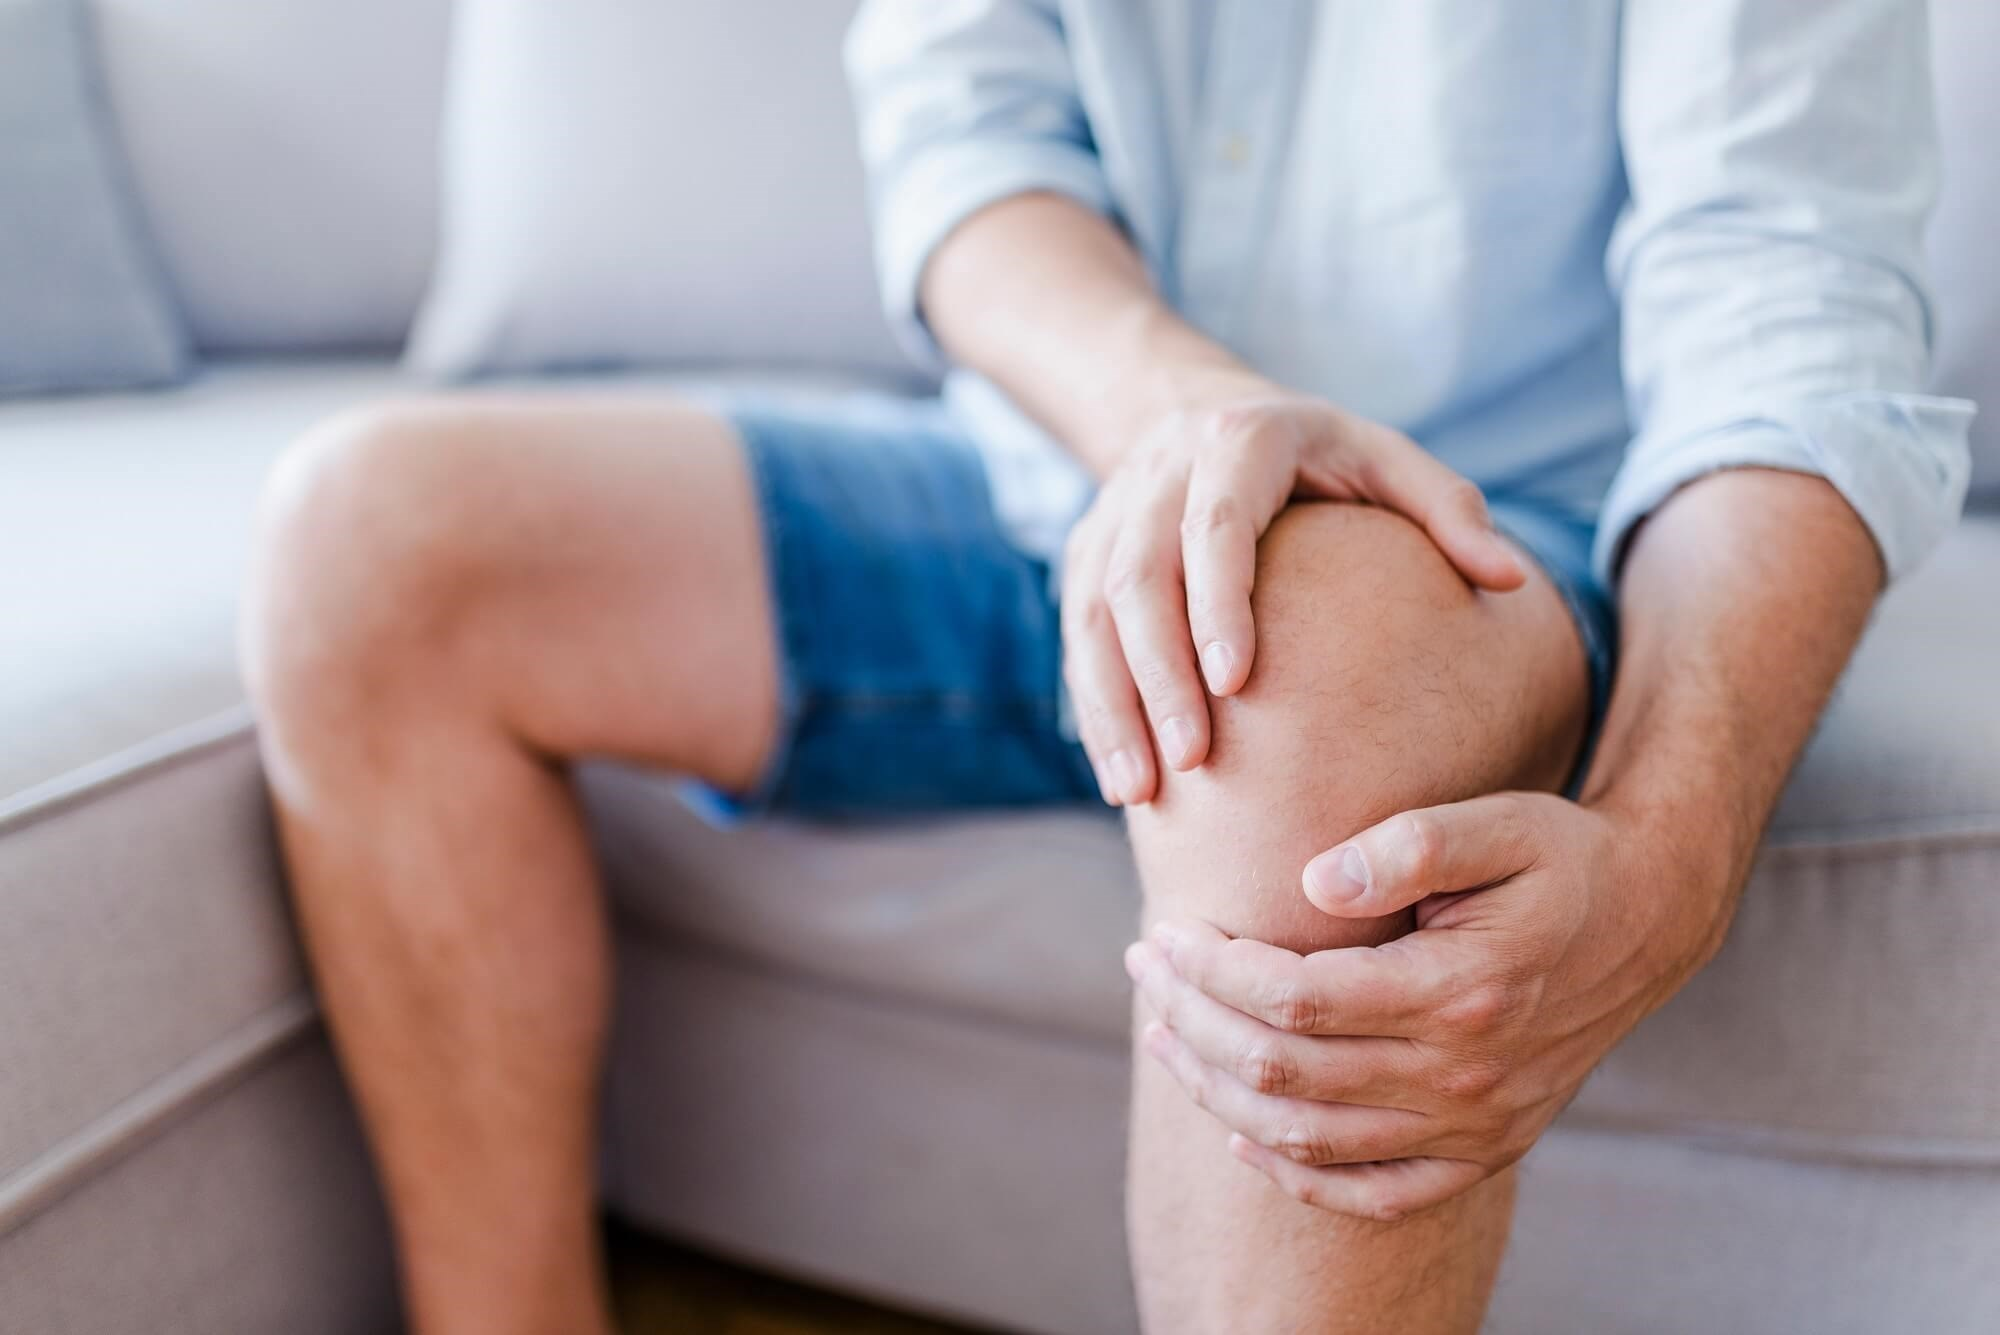 Four Pain Susceptibility Phenotypes Identified in Knee Osteoarthritis